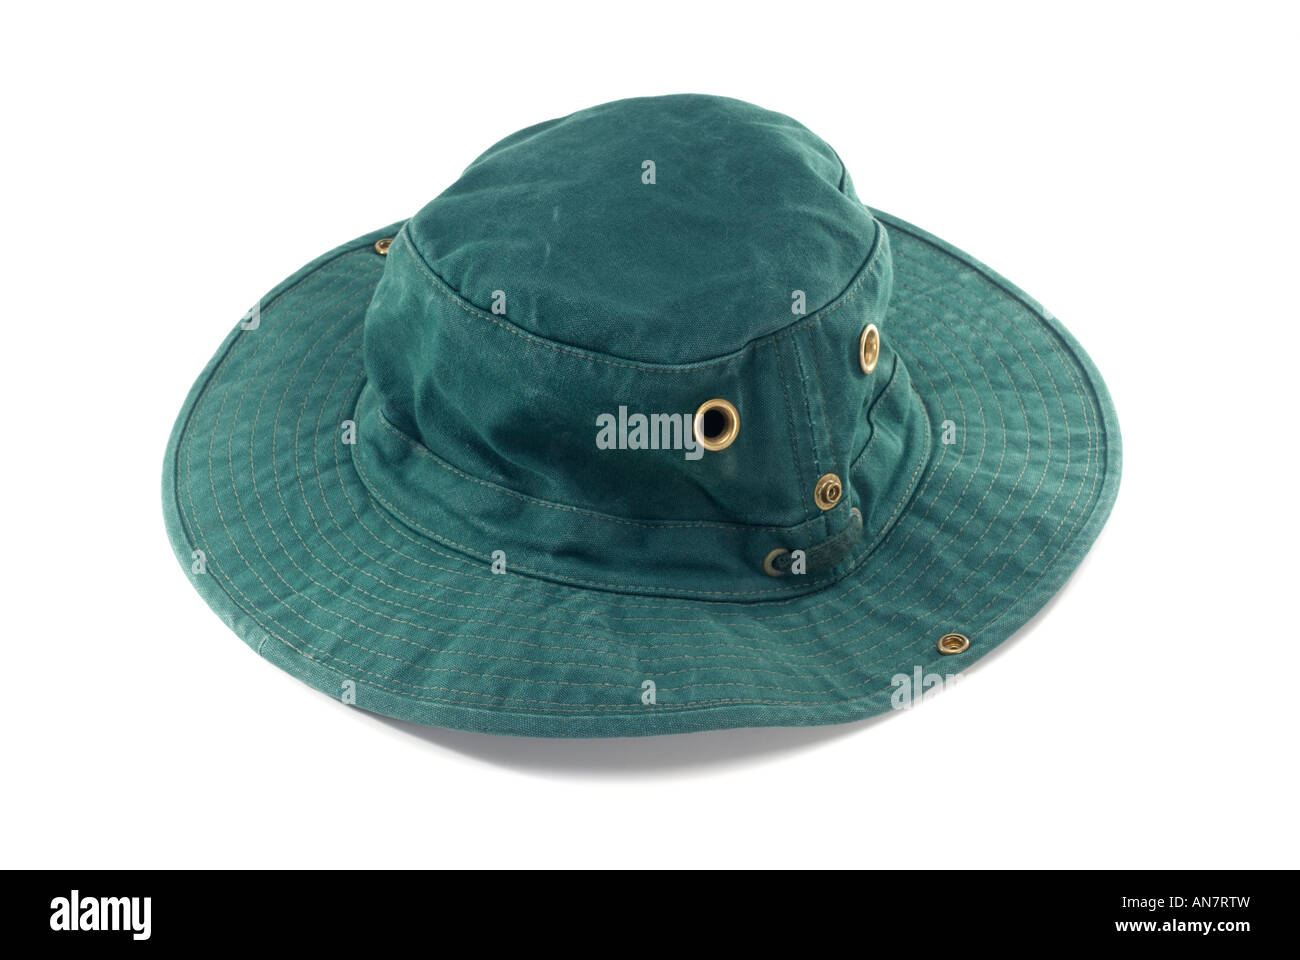 71e81fb5b9f ... real green tilley hat stock image 2c368 23719